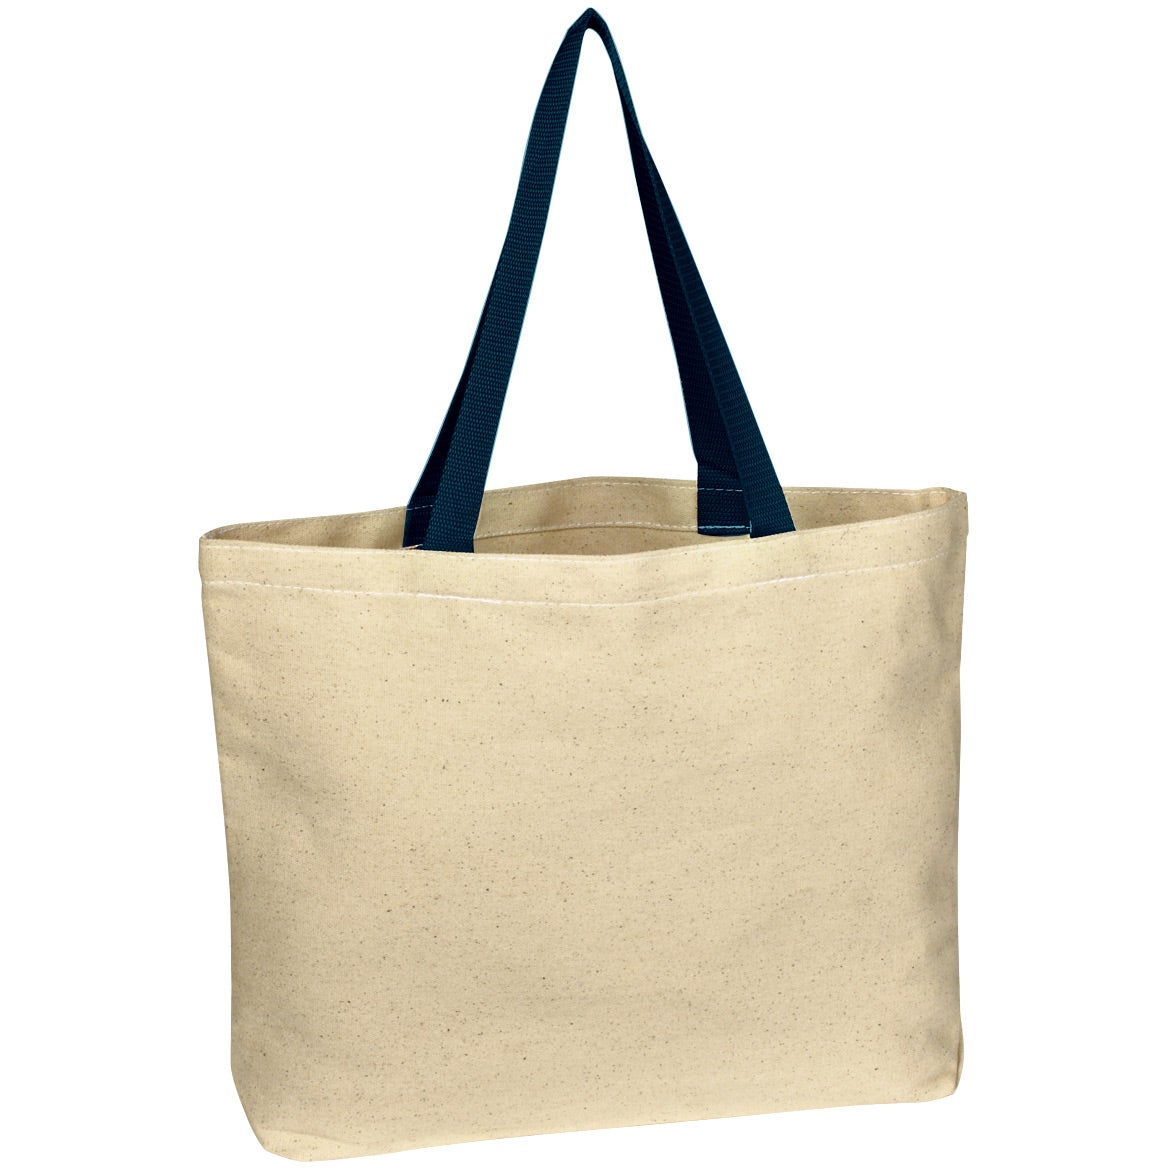 Cotton Totes. invalid category id. Cotton Totes. Showing 31 of 31 results that match your query. Search Product Result. Product - Chain Bag, Brown. Product Image. Price. Product - Love My Mother Floral Pretty Cotton Canvas Tote Bag Carry All Day Bag. Reduced Price. Product Image. Price $